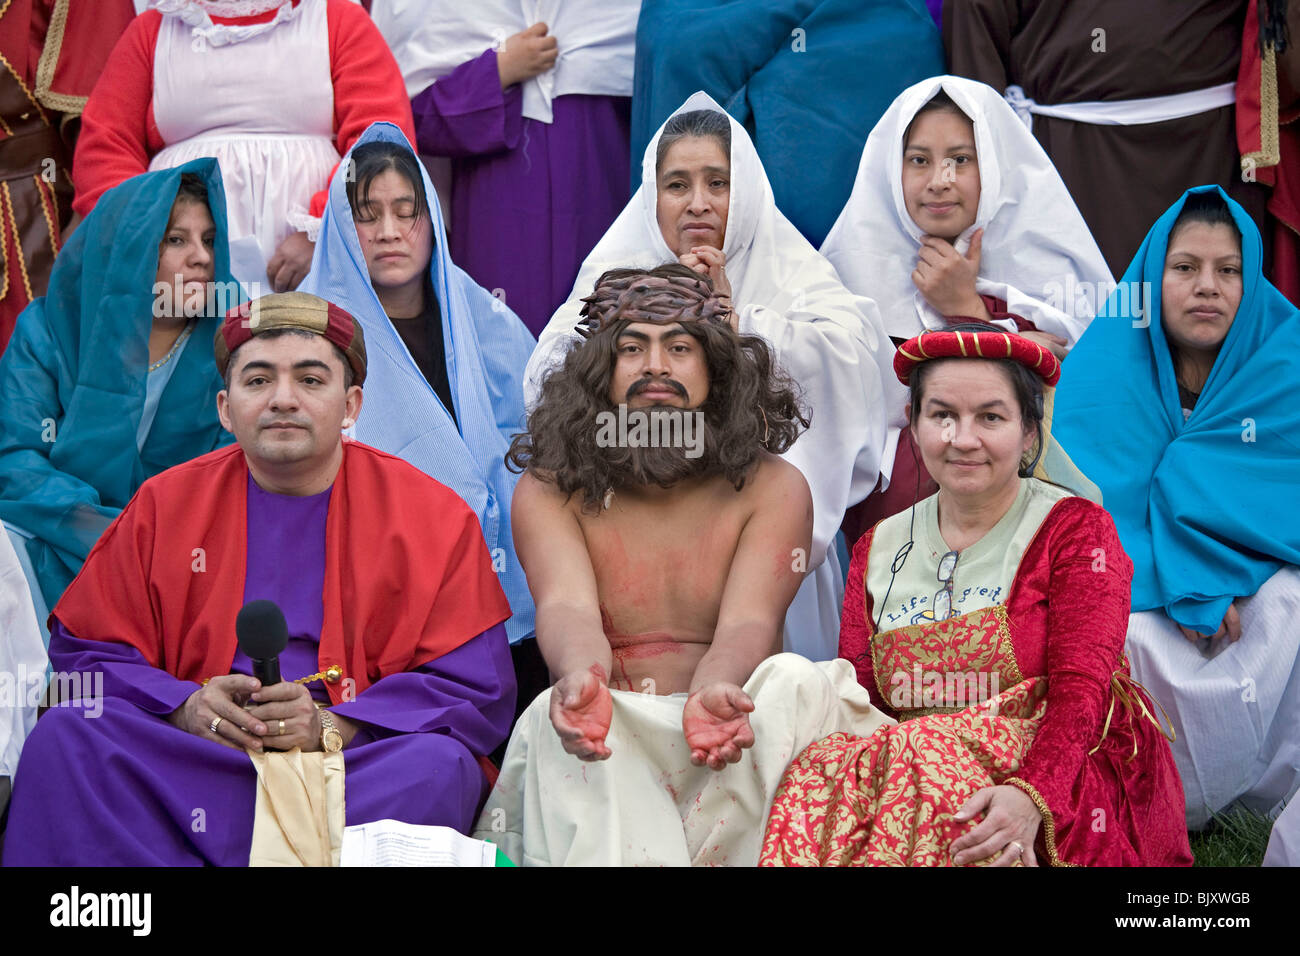 Reenactment of the Passion of the Christ on Good Friday by Christian members of the Hispanic community in Cookeville - Stock Image